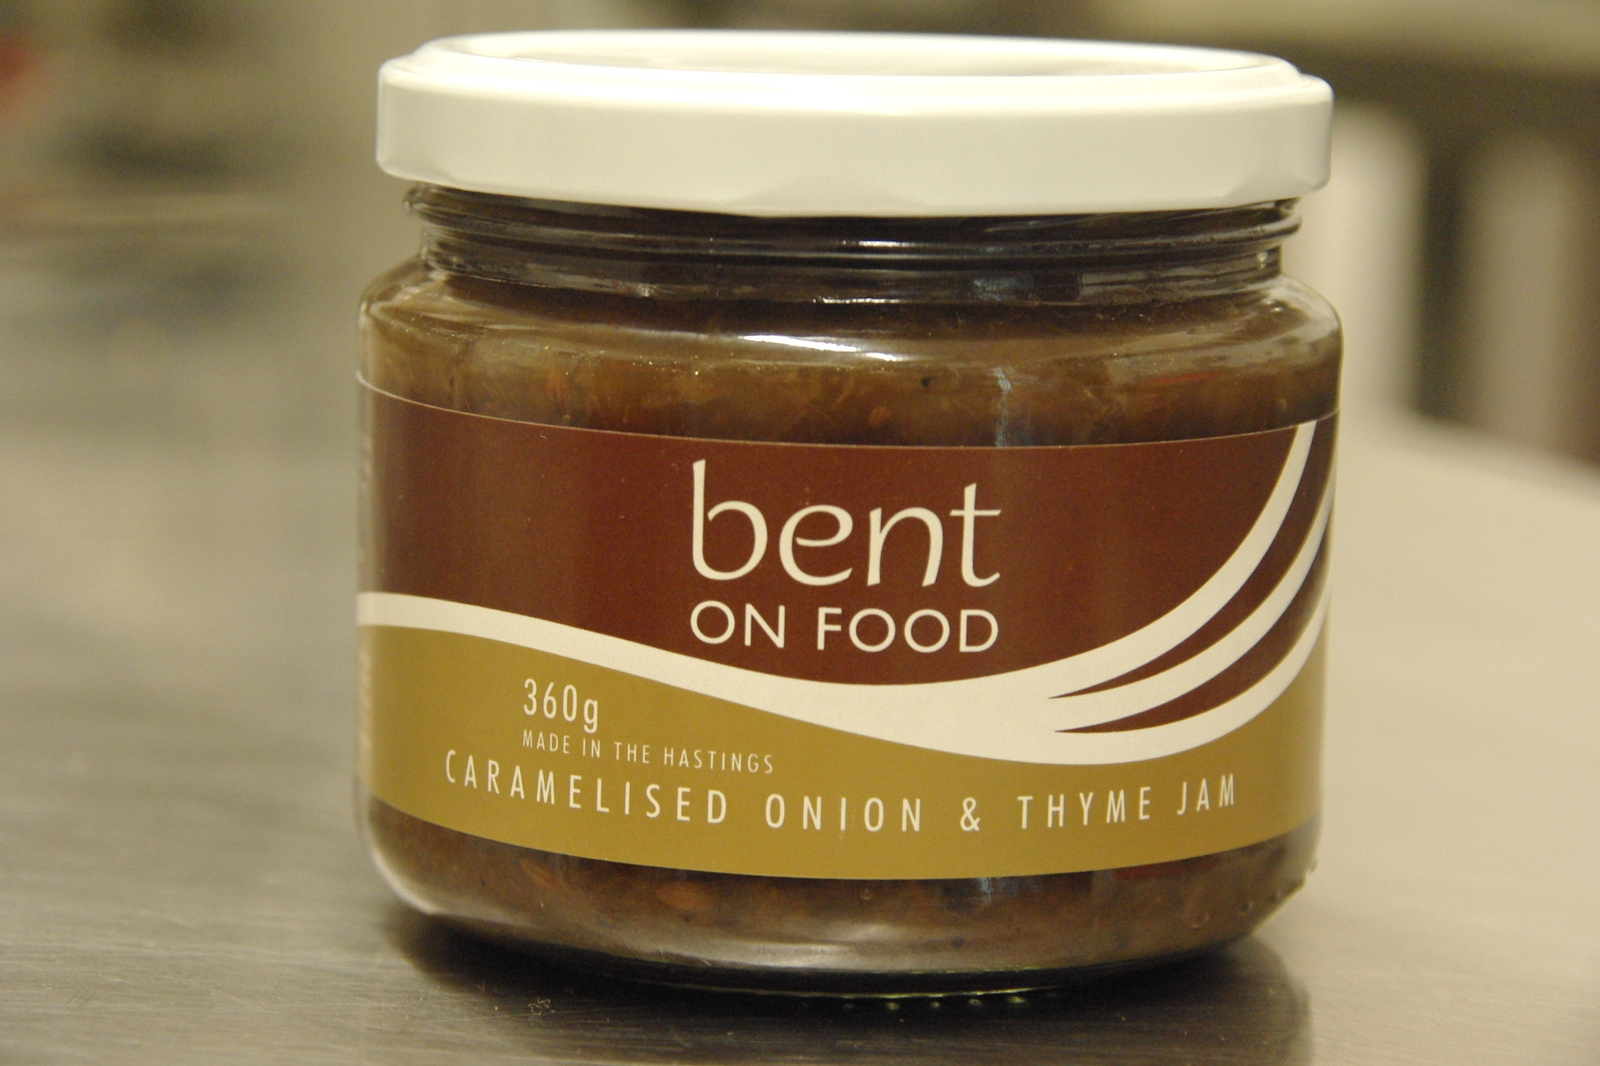 Bent Online - Bent on Food Caramelised Onion and Thyme Jam